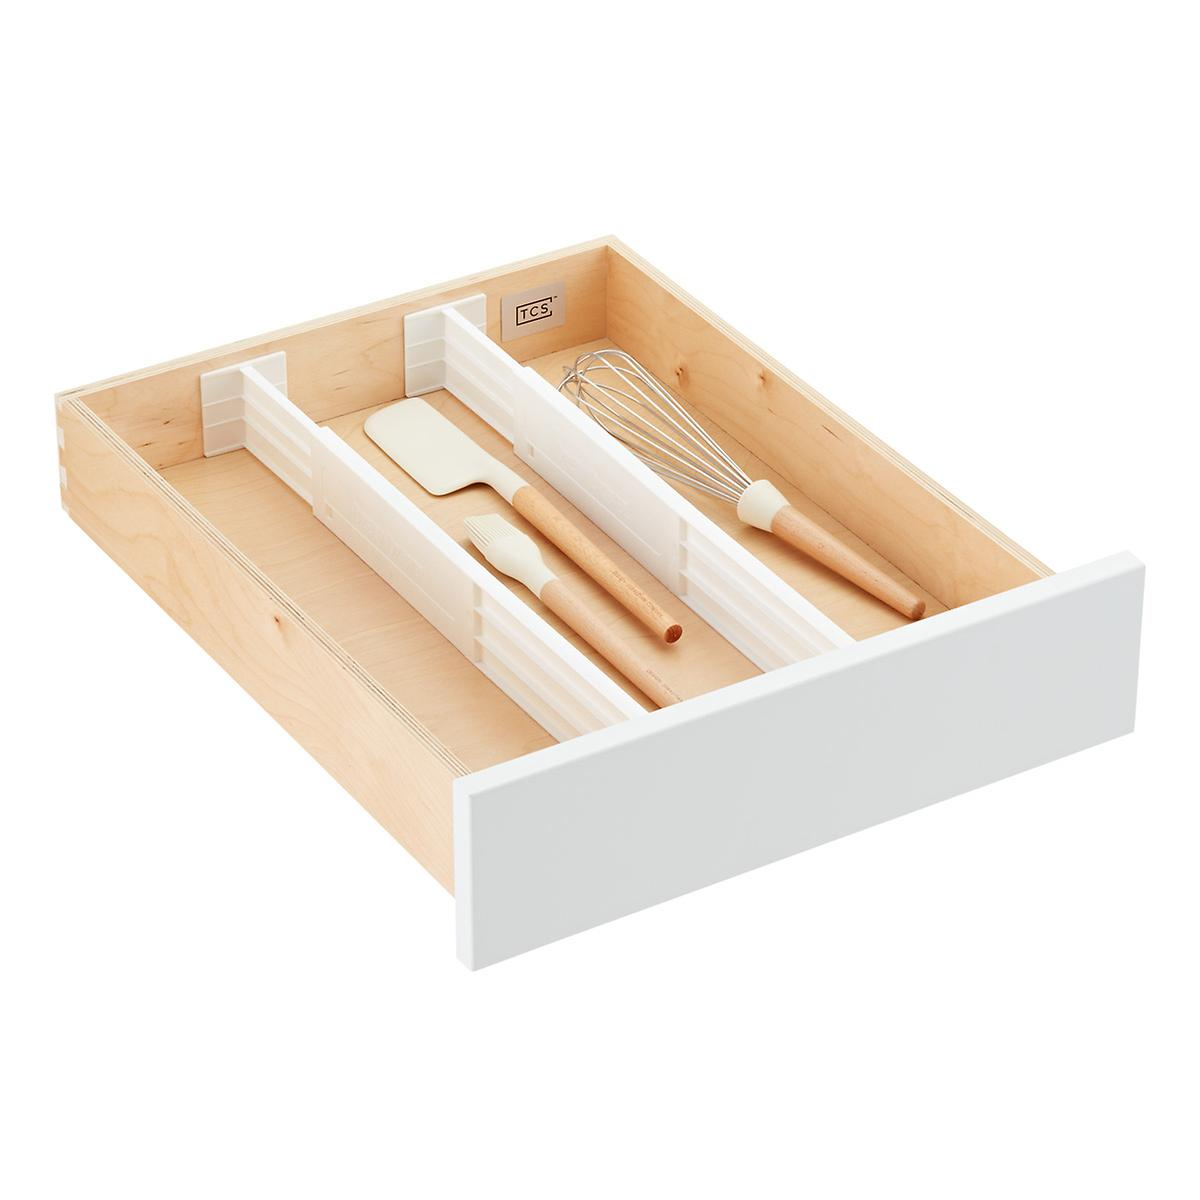 Kitchen Drawer Organization Drawer Organizers Utensil Holders Silverware Trays The